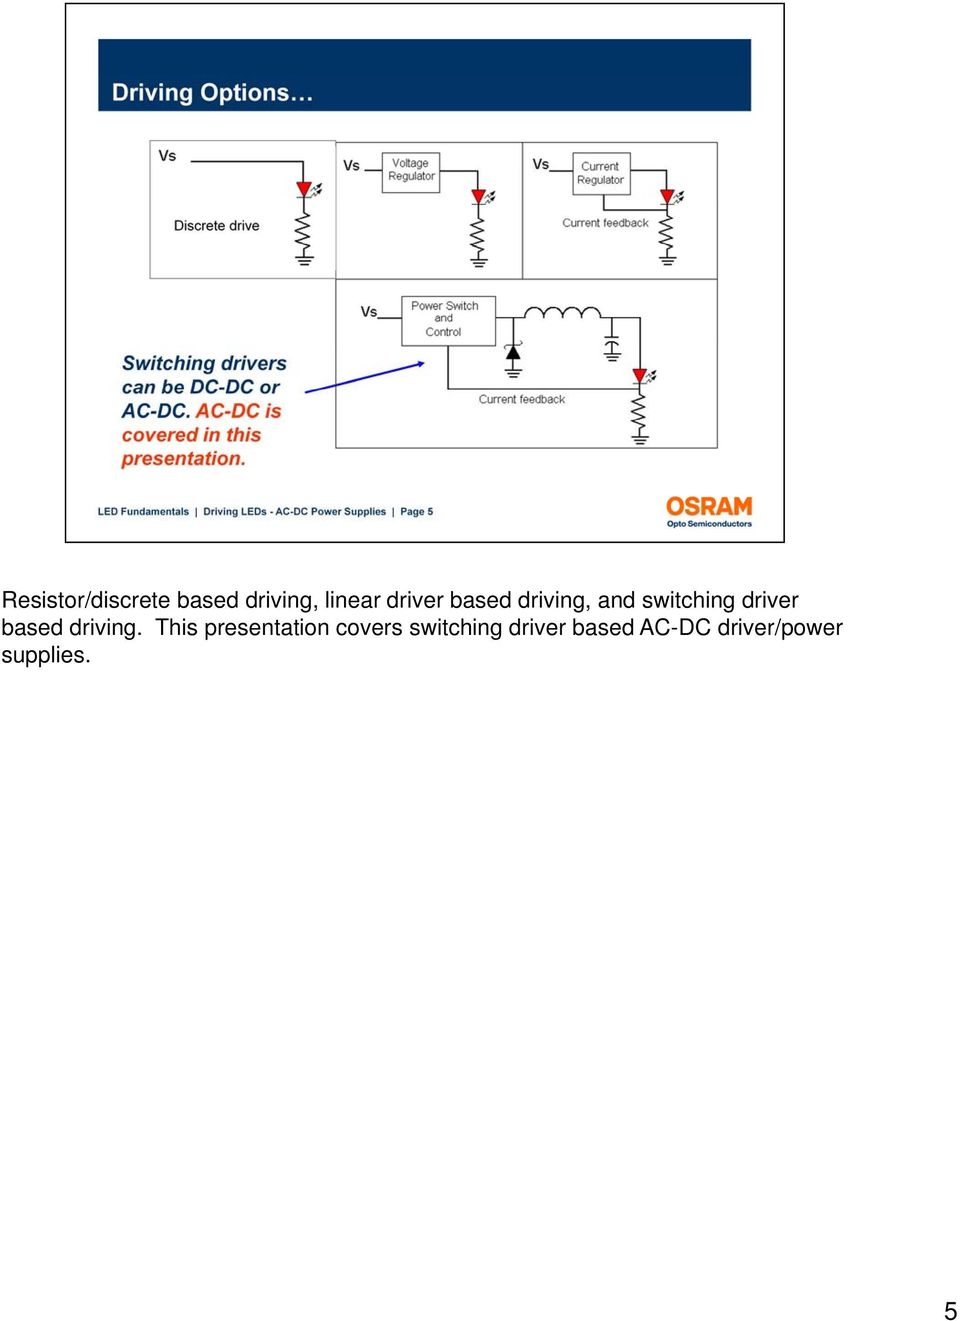 Welcome To This Presentation On Driving Leds Ac Dc Power Supplies Led Driver Powers Halogen Replacement Based